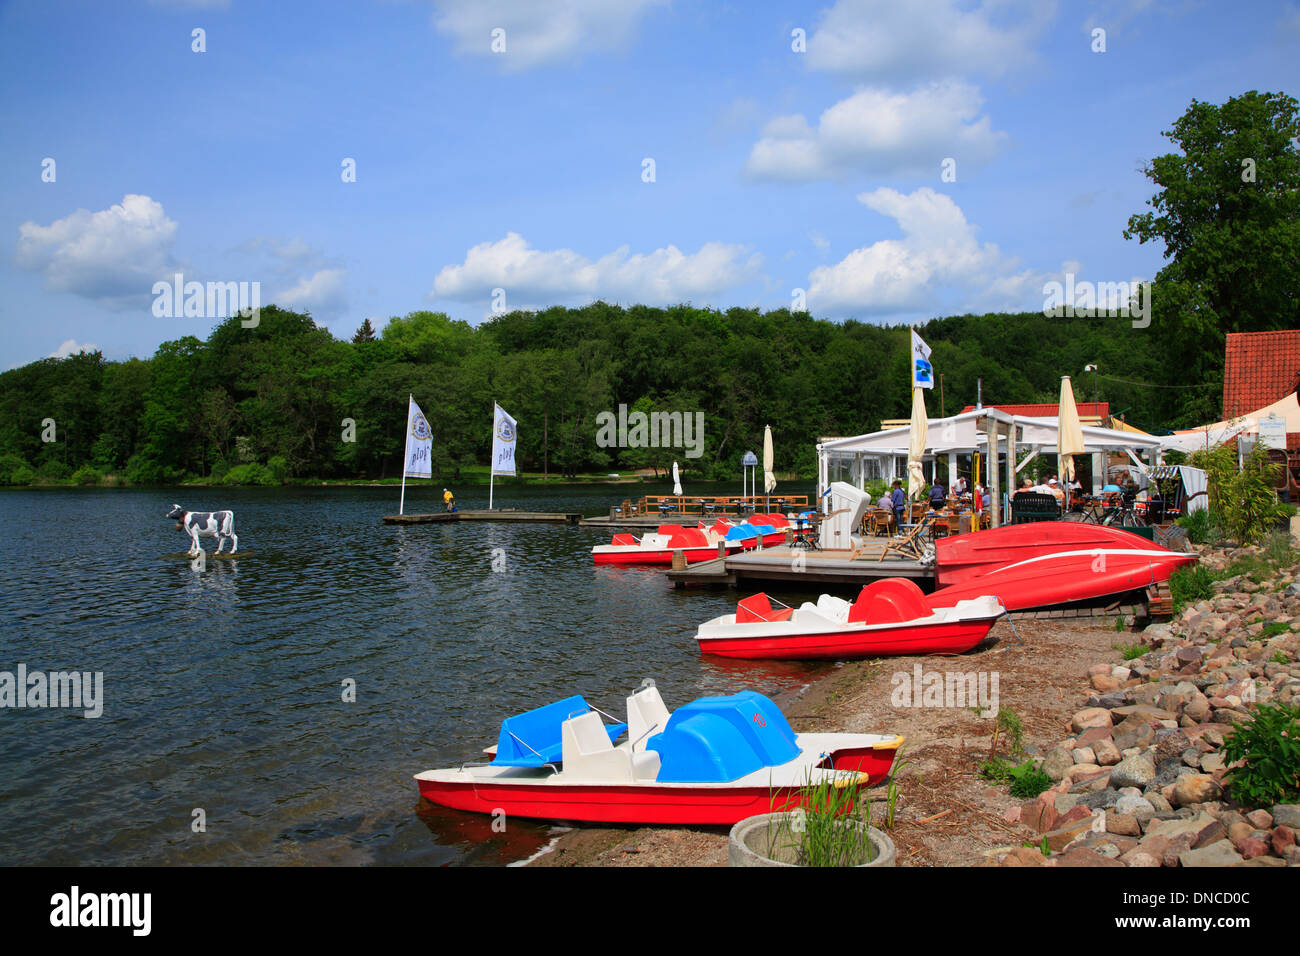 Malente-Gremsmuehlen, boats for rent, Holsteinische Schweiz, Schleswig-Holstein, Germany, Europe - Stock Image